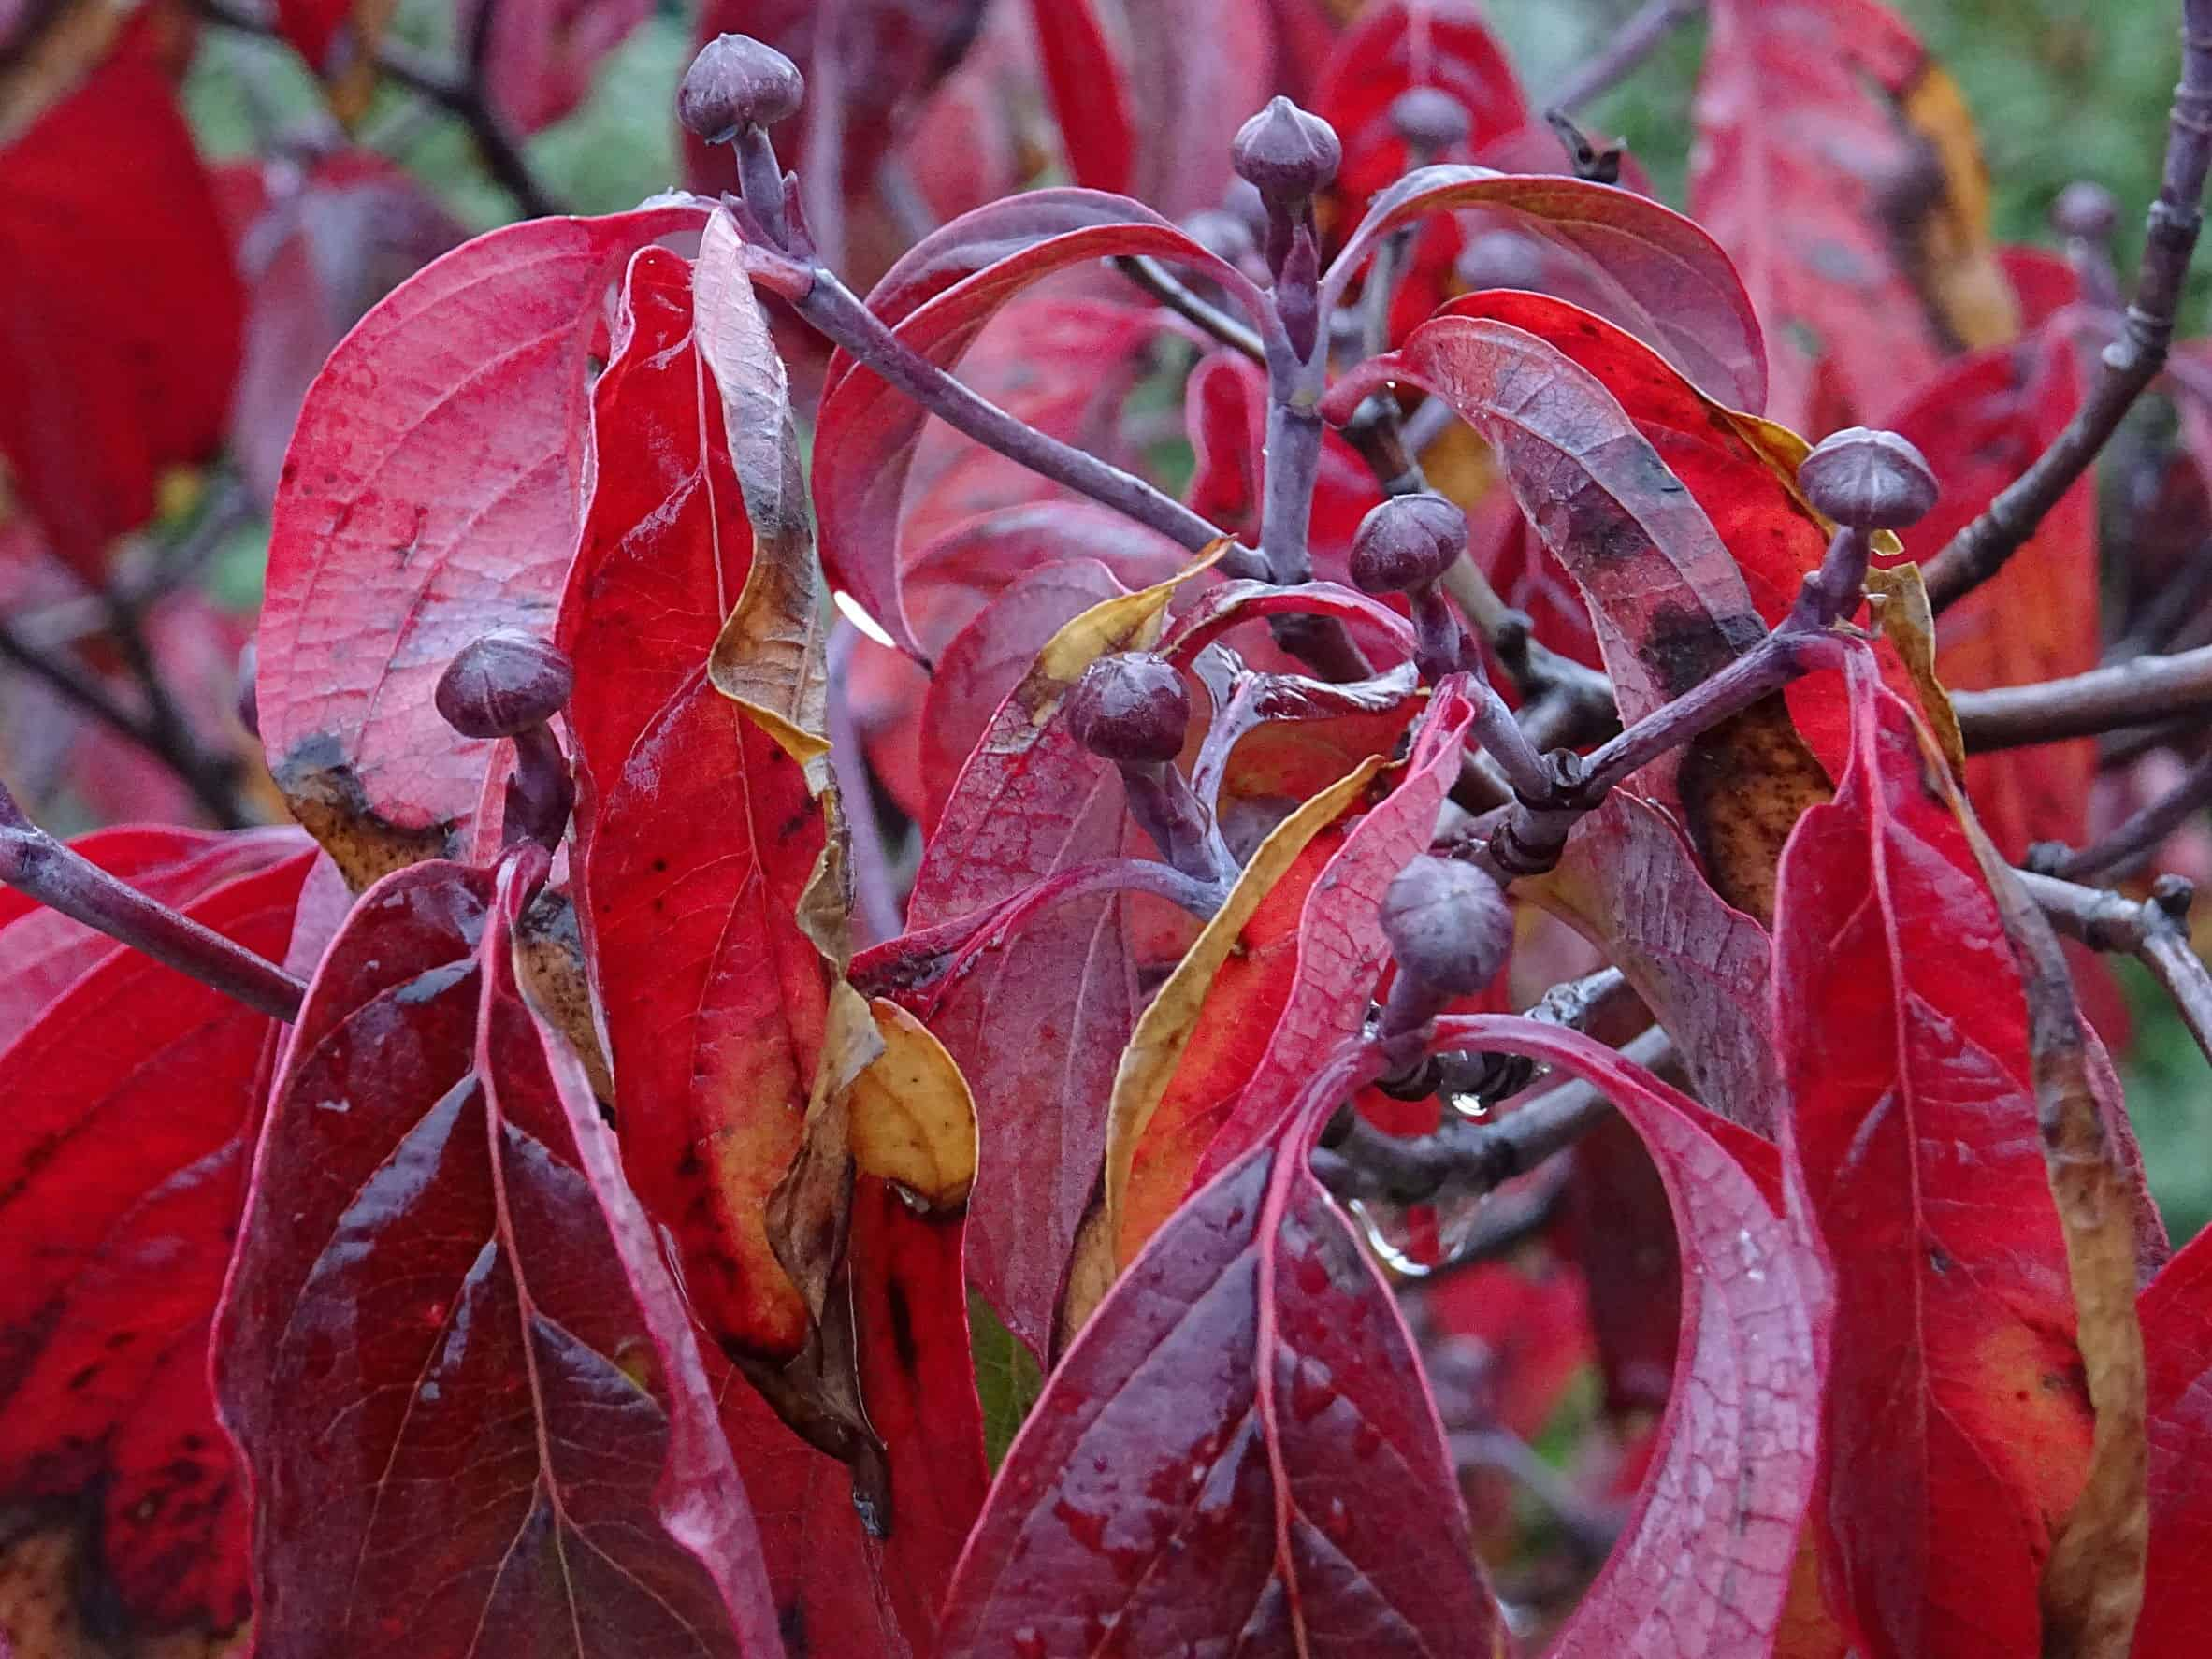 Flowering dogwoods have red or purple fall leaves.